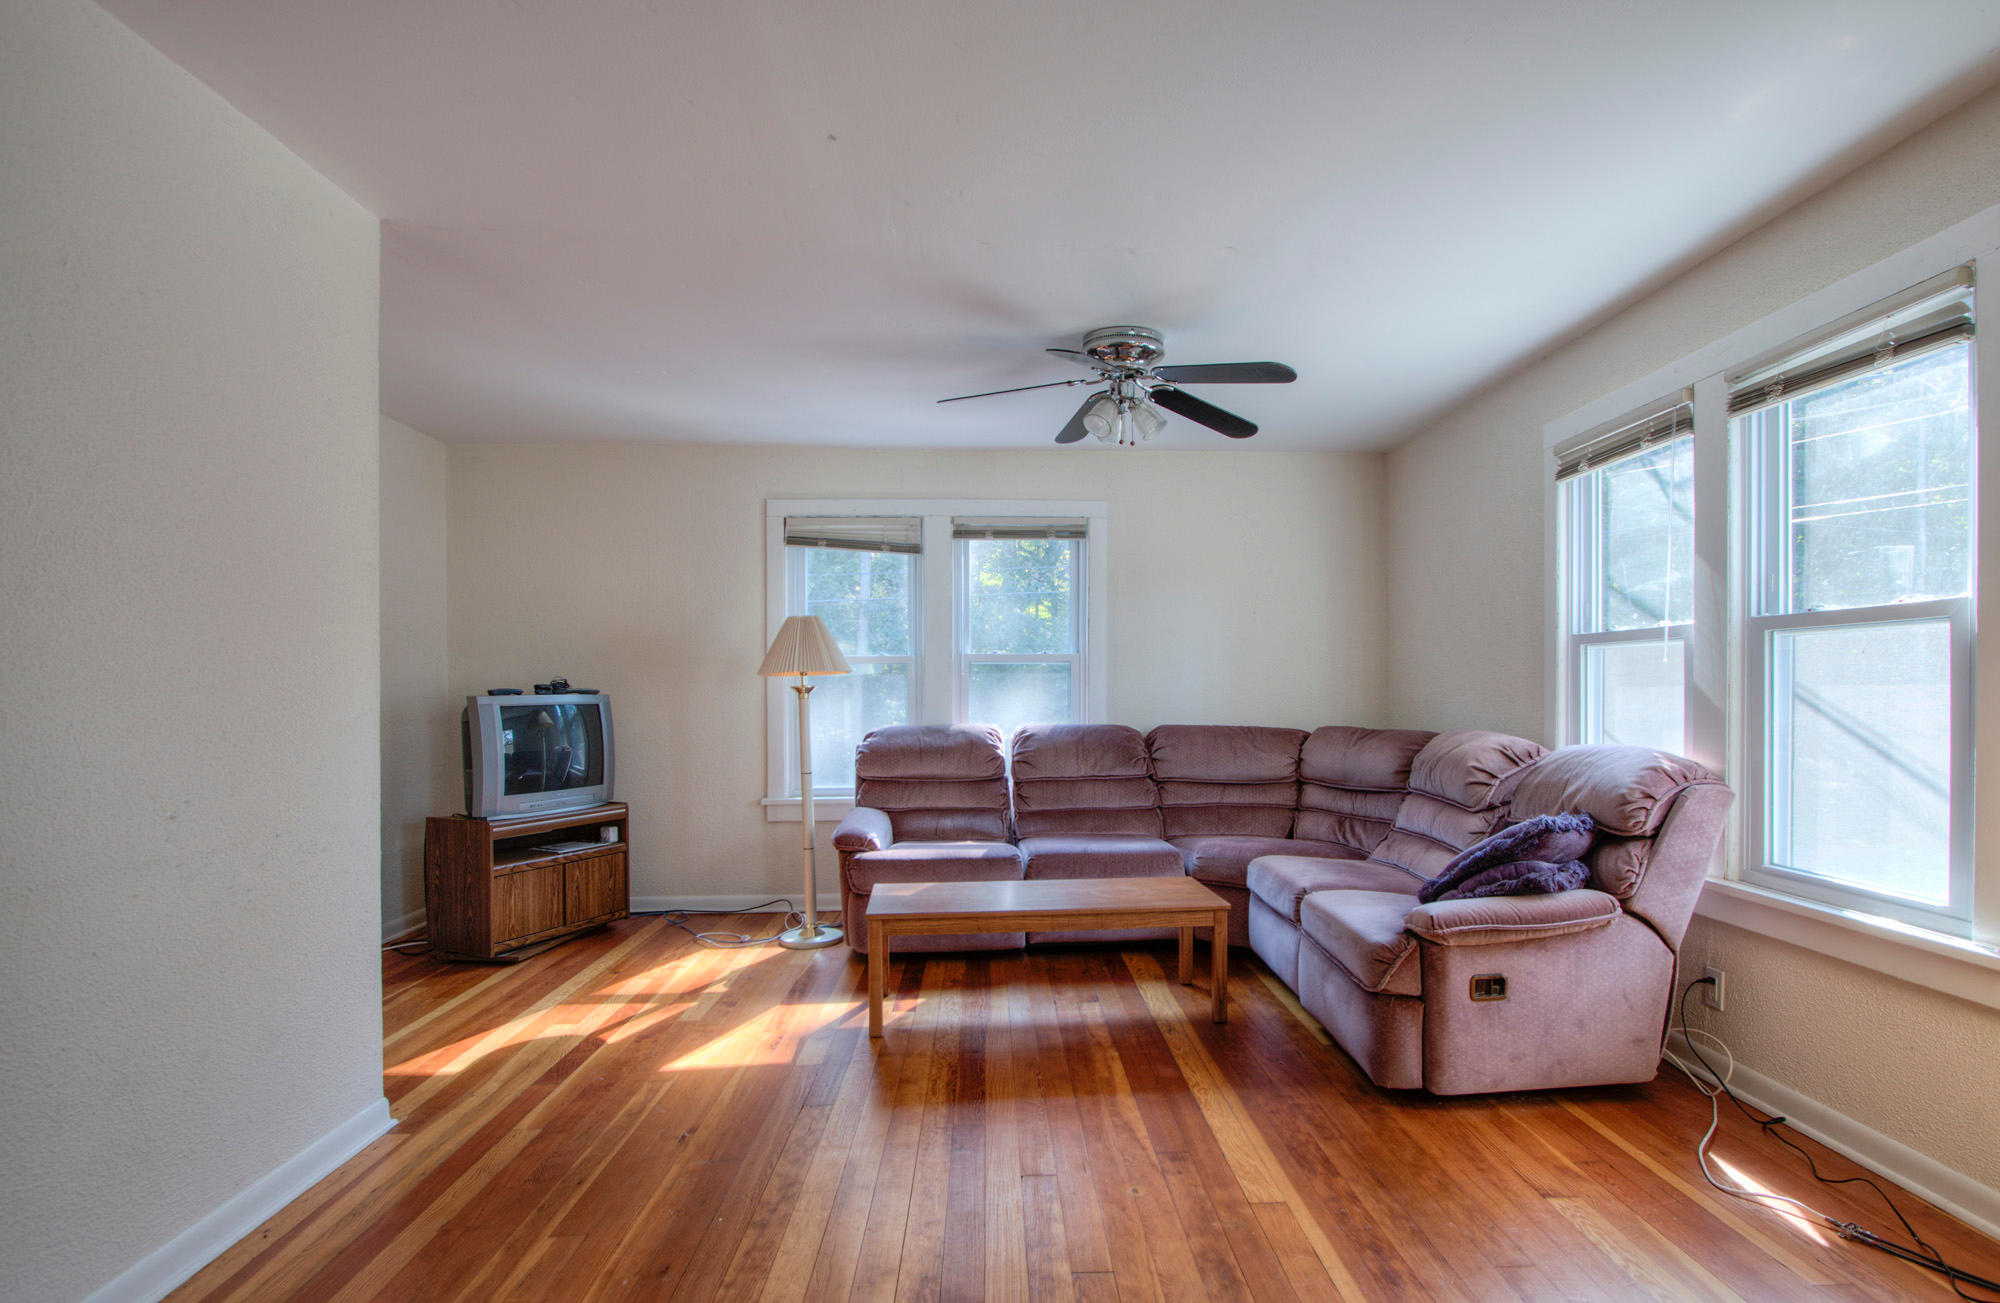 W4724 Lakeshore Dr, Linn, Wisconsin 53125, 5 Bedrooms Bedrooms, 11 Rooms Rooms,1 BathroomBathrooms,Single-family,For Sale,Lakeshore Dr,1715347